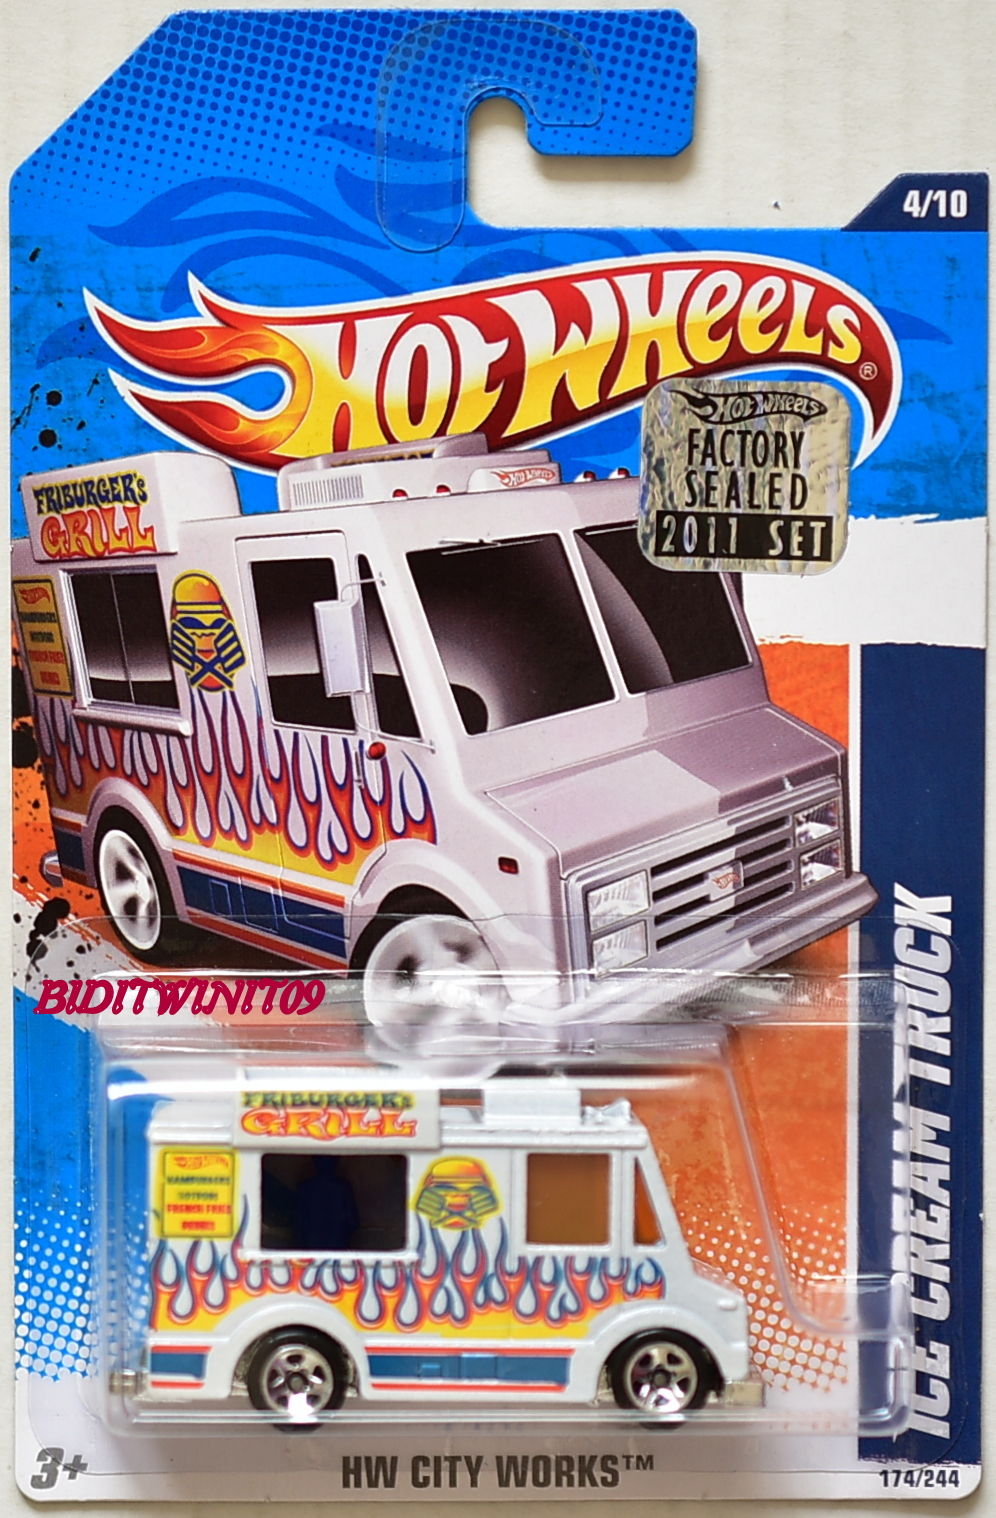 HOT WHEELS 2011 HW CITY WORKS ICE CREAM TRUCK #4/10 WHITE FACTORY SEALED